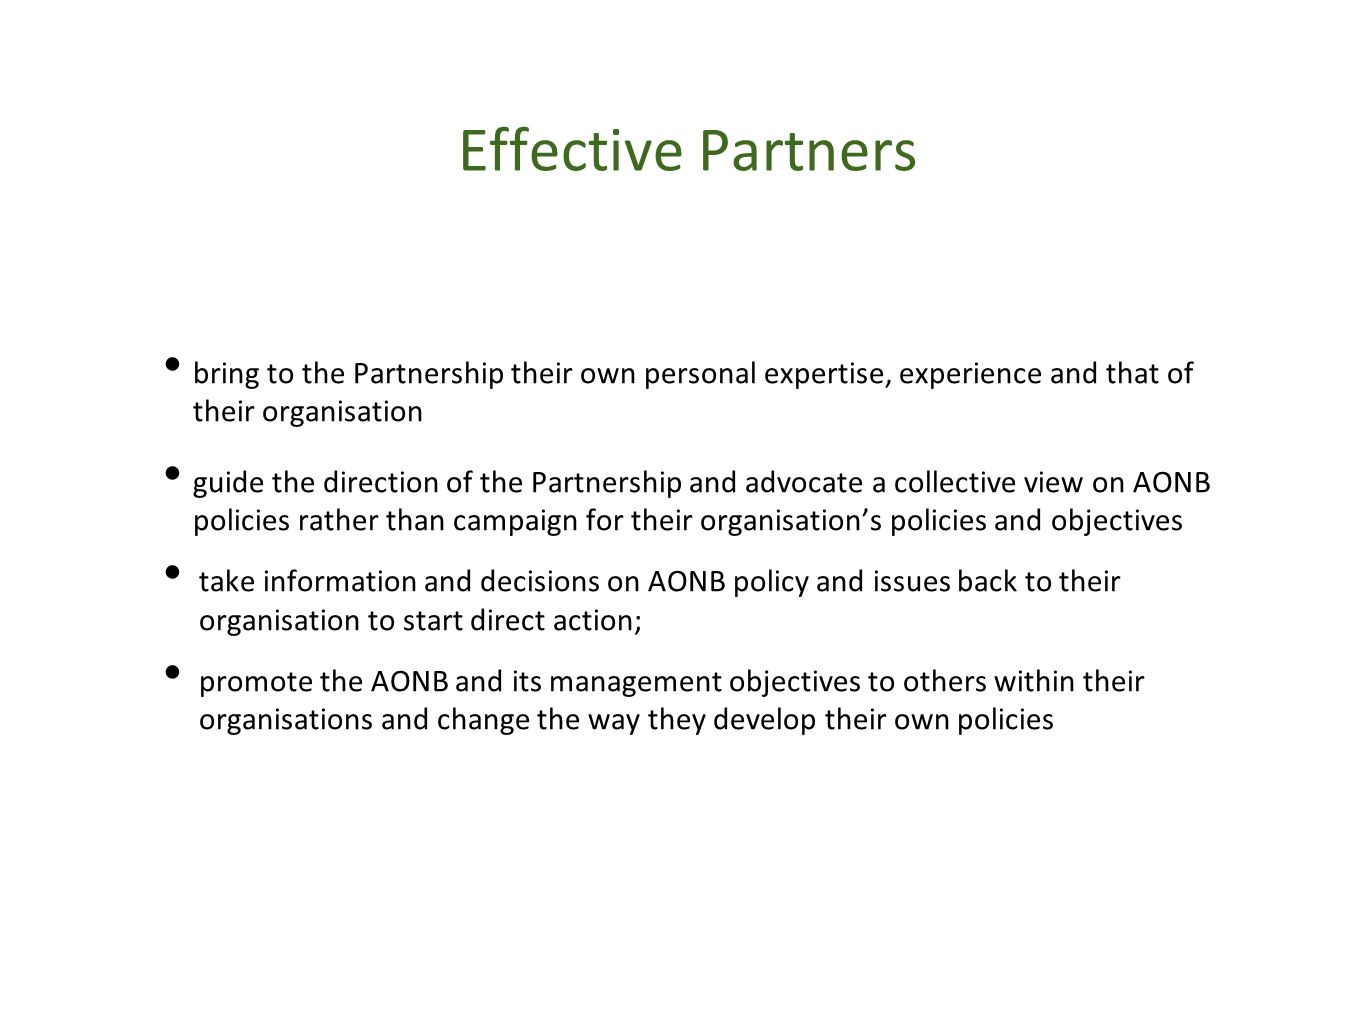 Effective Partners bring to the Partnership their own personal expertise, experience and that of their organisation guide the direction of the Partnership and advocate a collective view on AONB policies rather than campaign for their organisation's policies and objectives take information and decisions on AONB policy and issues back to their organisation to start direct action; promote the AONB and its management objectives to others within their organisations and change the way they develop their own policies